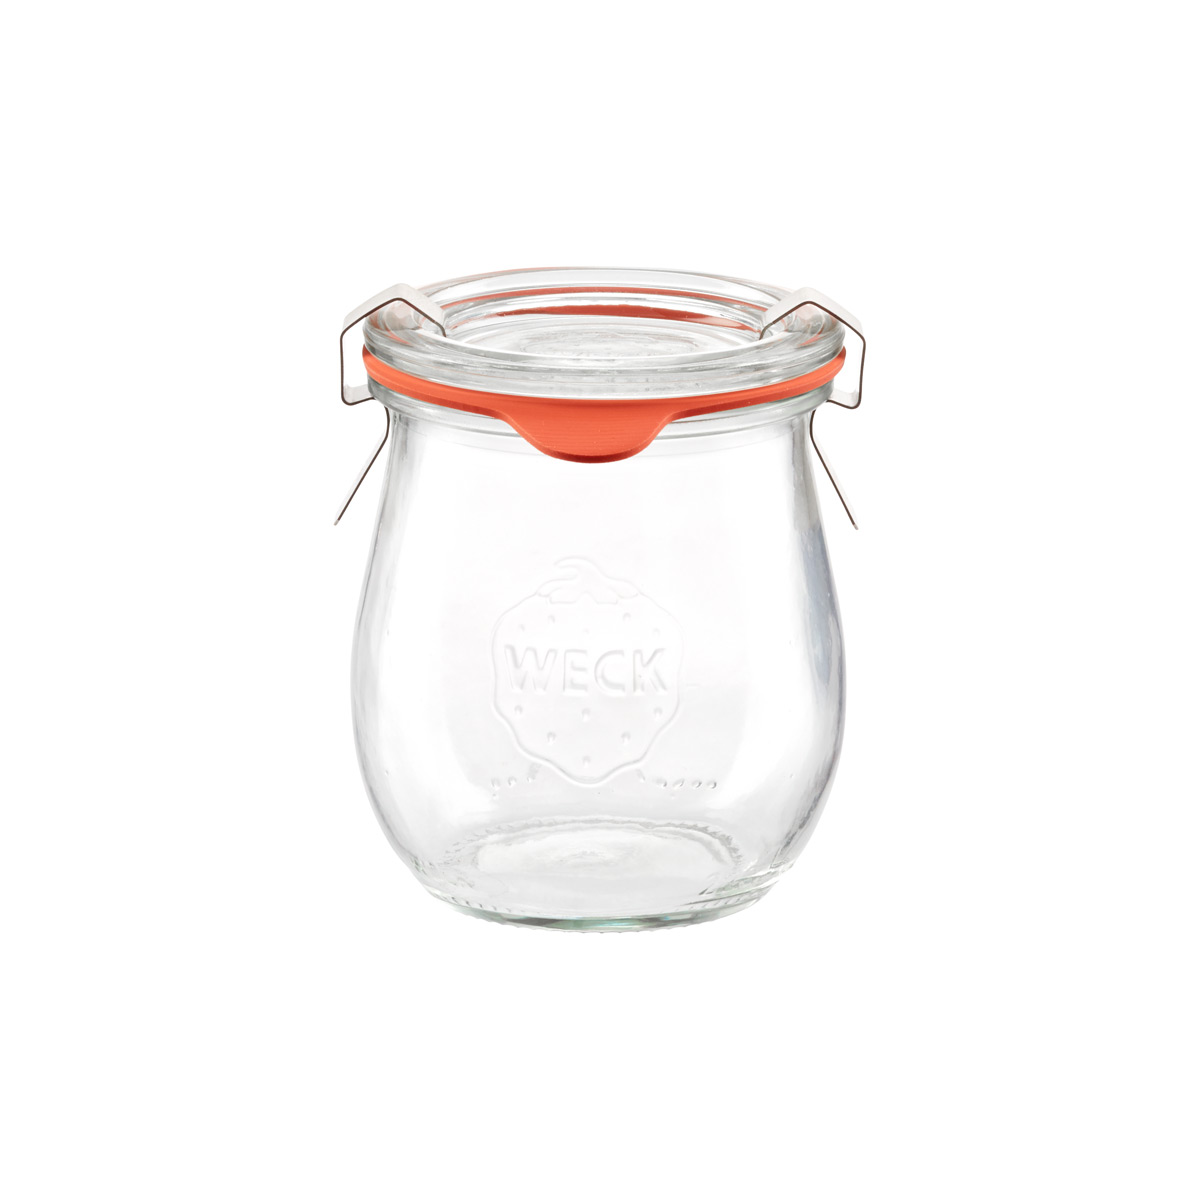 7.4 oz. Weck Tulpe Jar